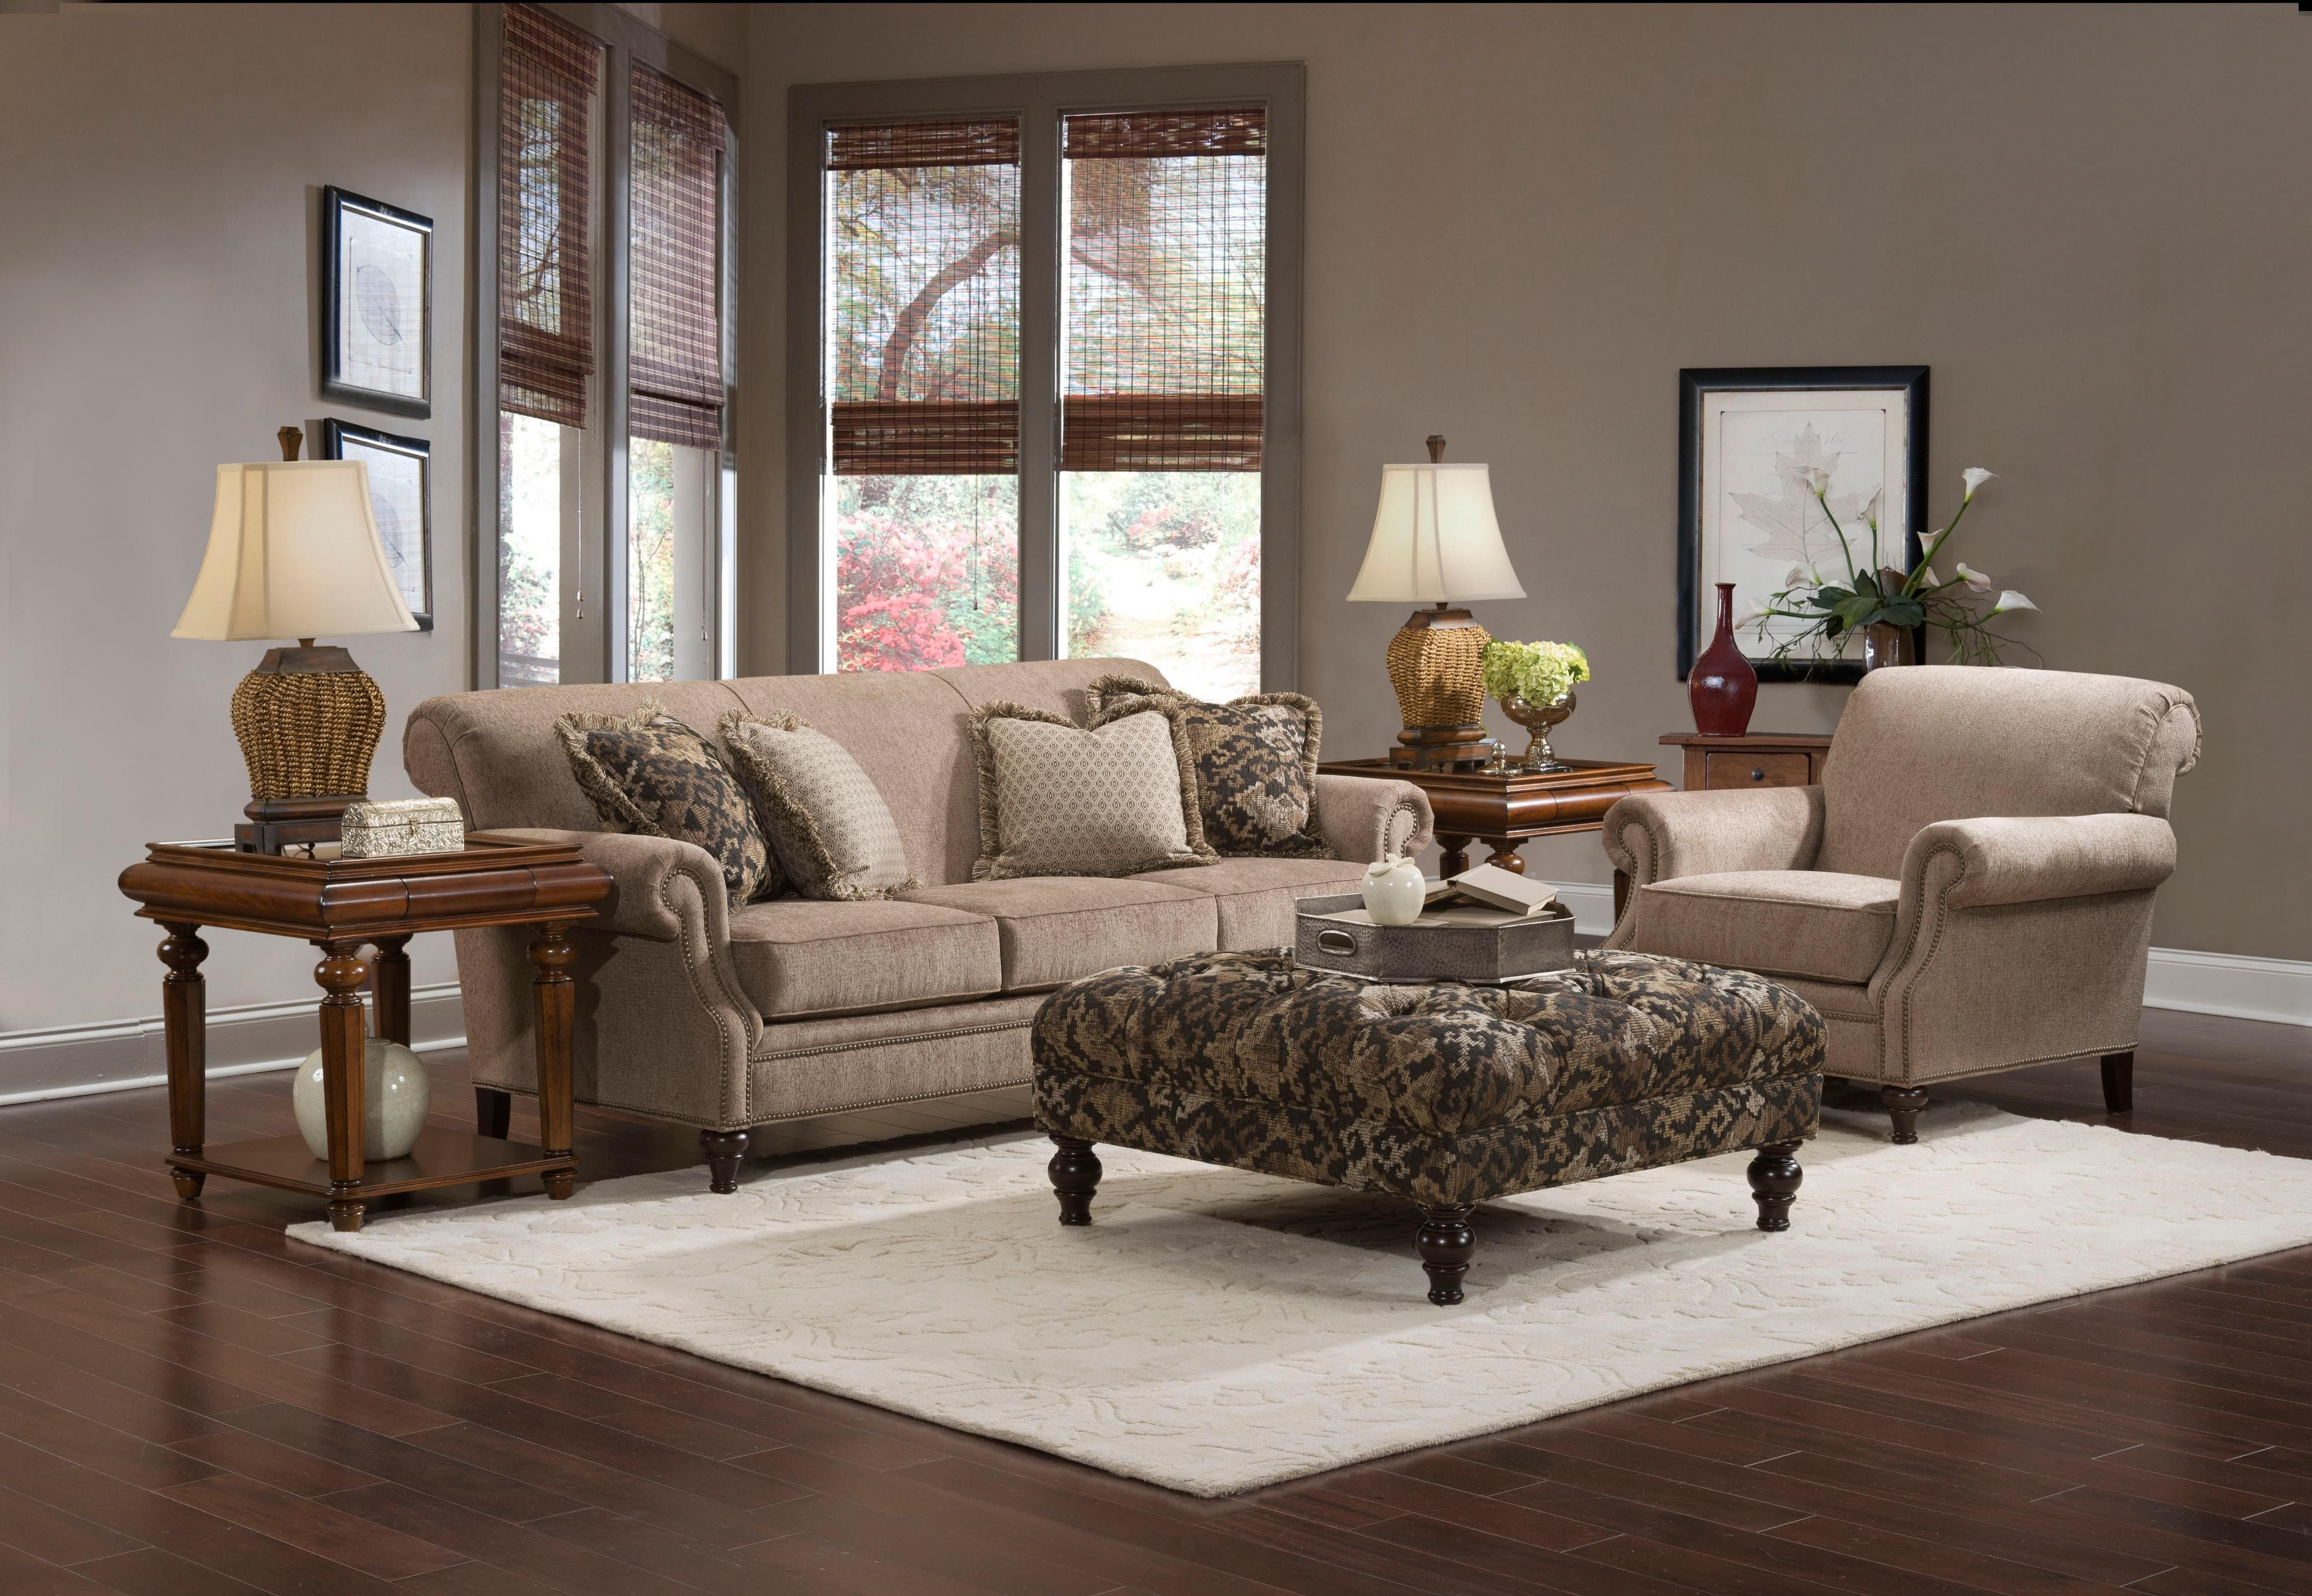 Broyhill Furniture Windsor Sofa with Rolled Arms - Becker